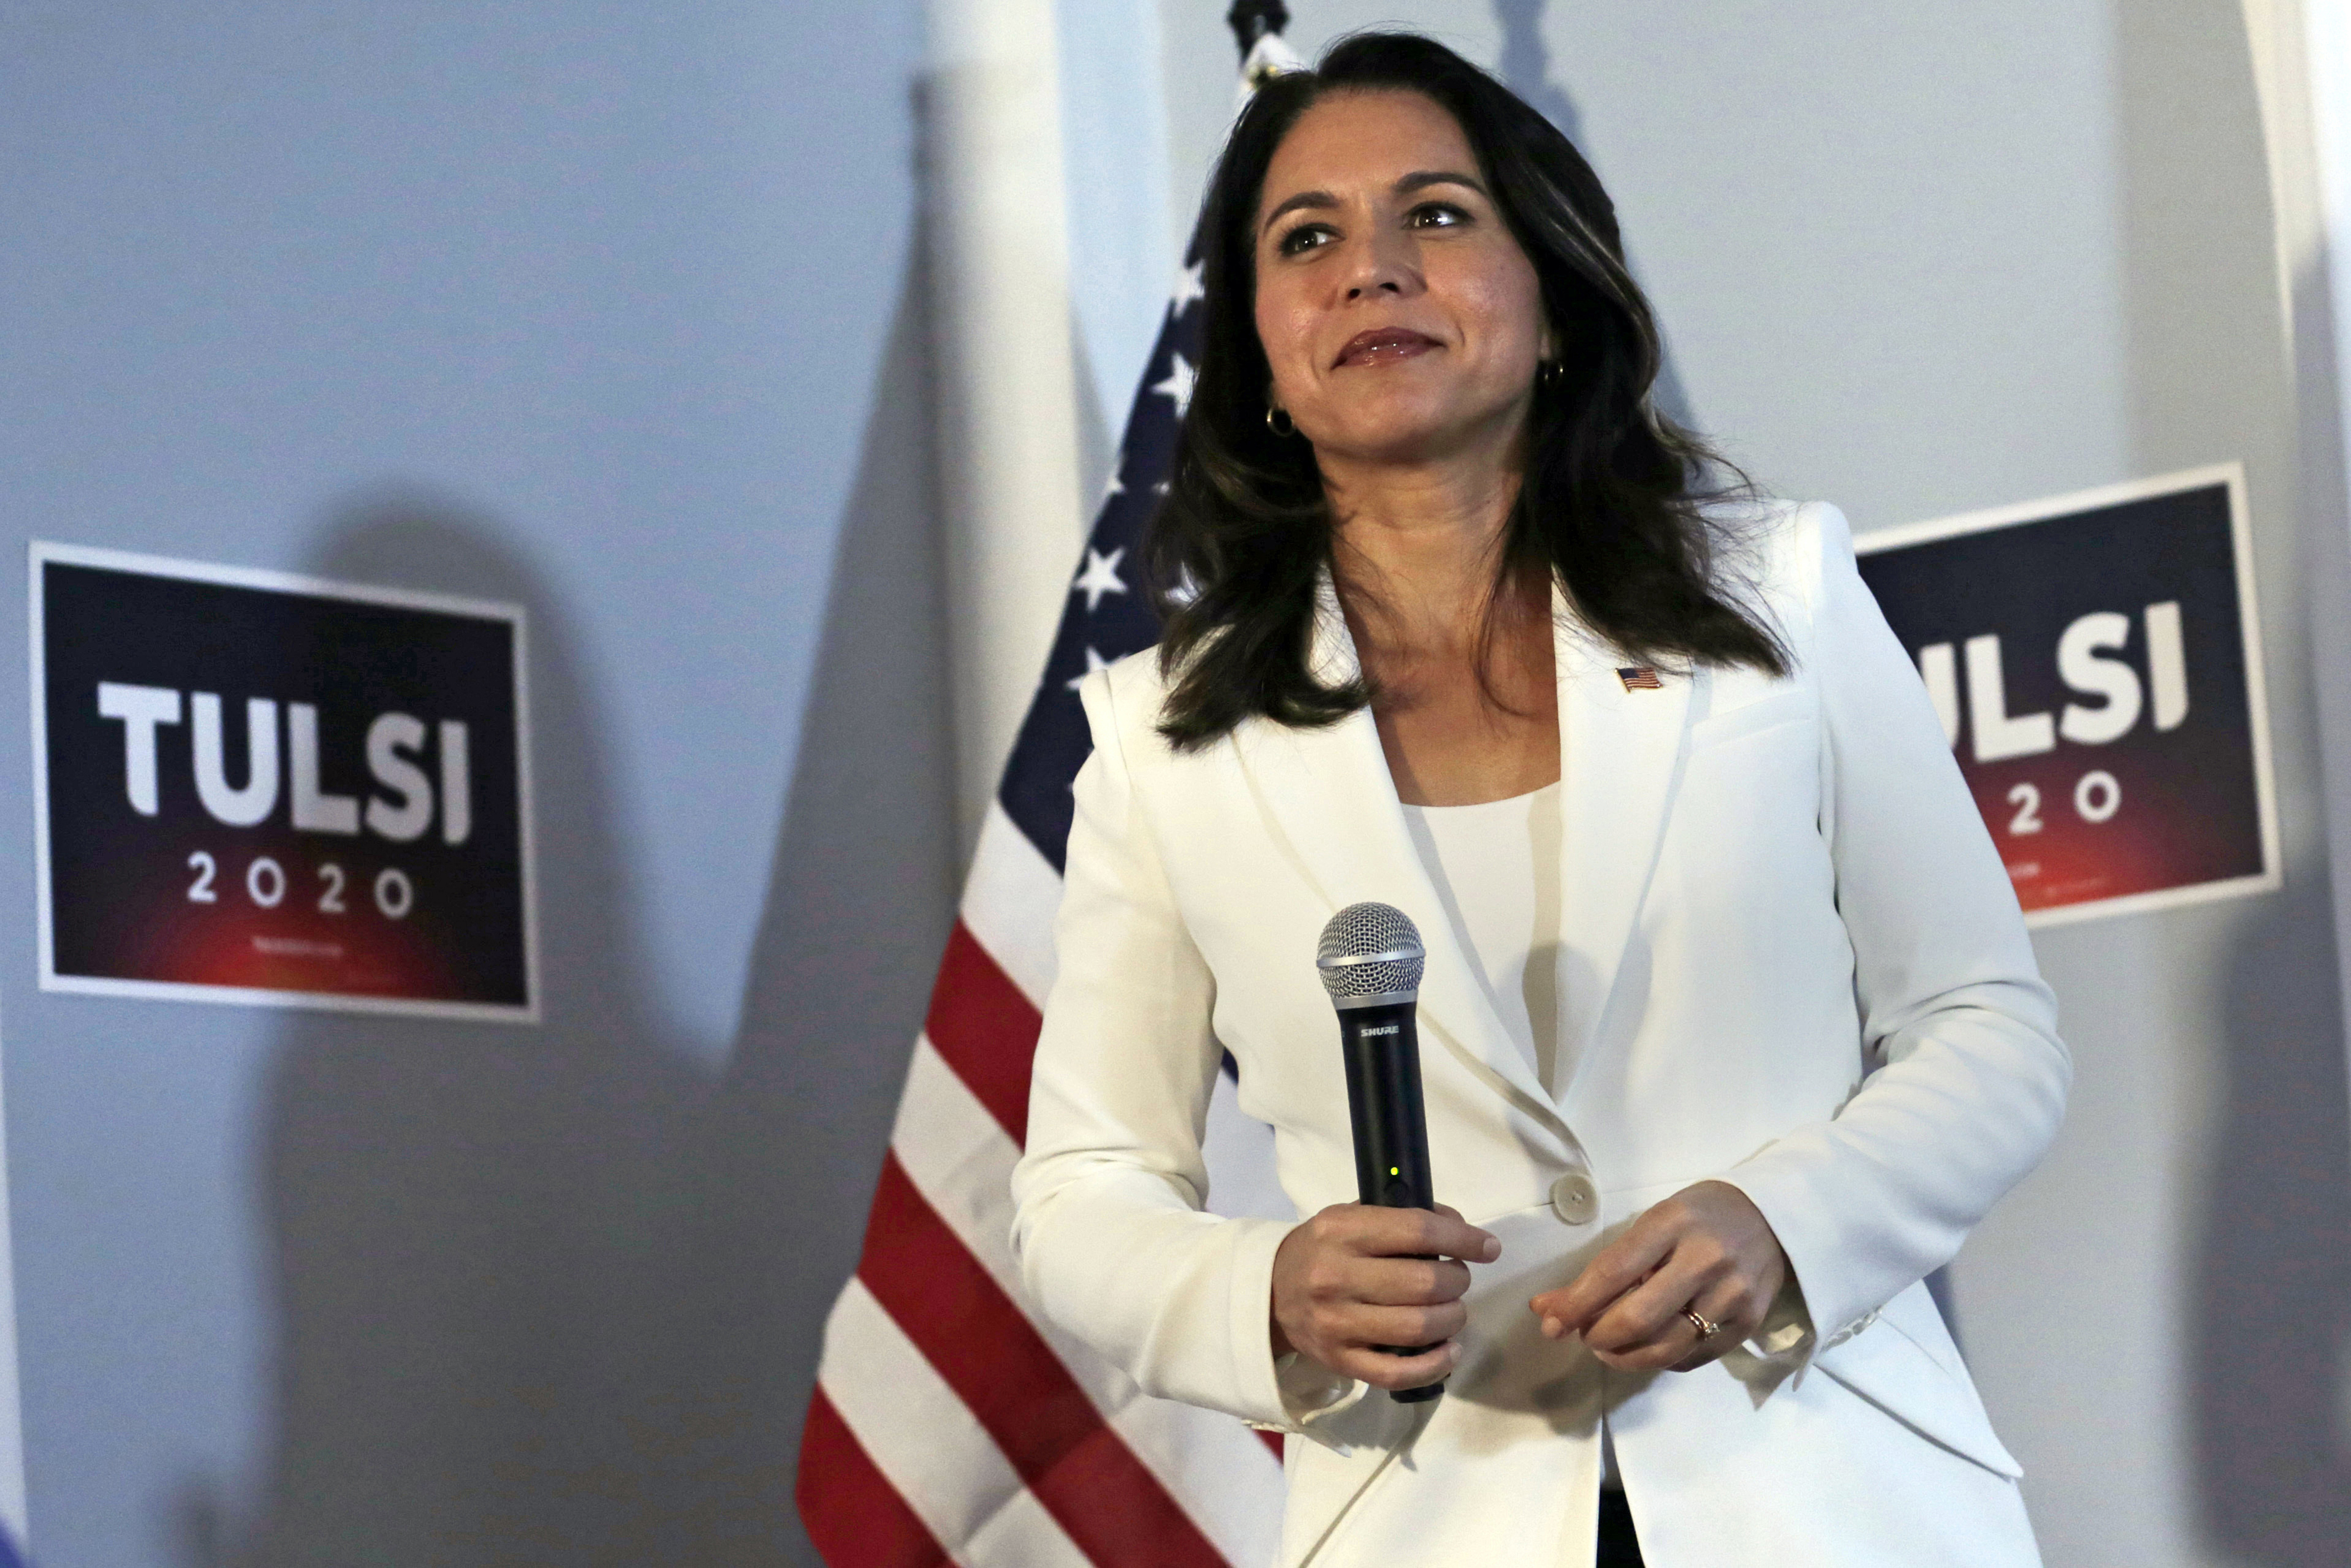 CNN staffer says network bigwigs 'don't like Tulsi Gabbard' in undercover Project Veritas sting